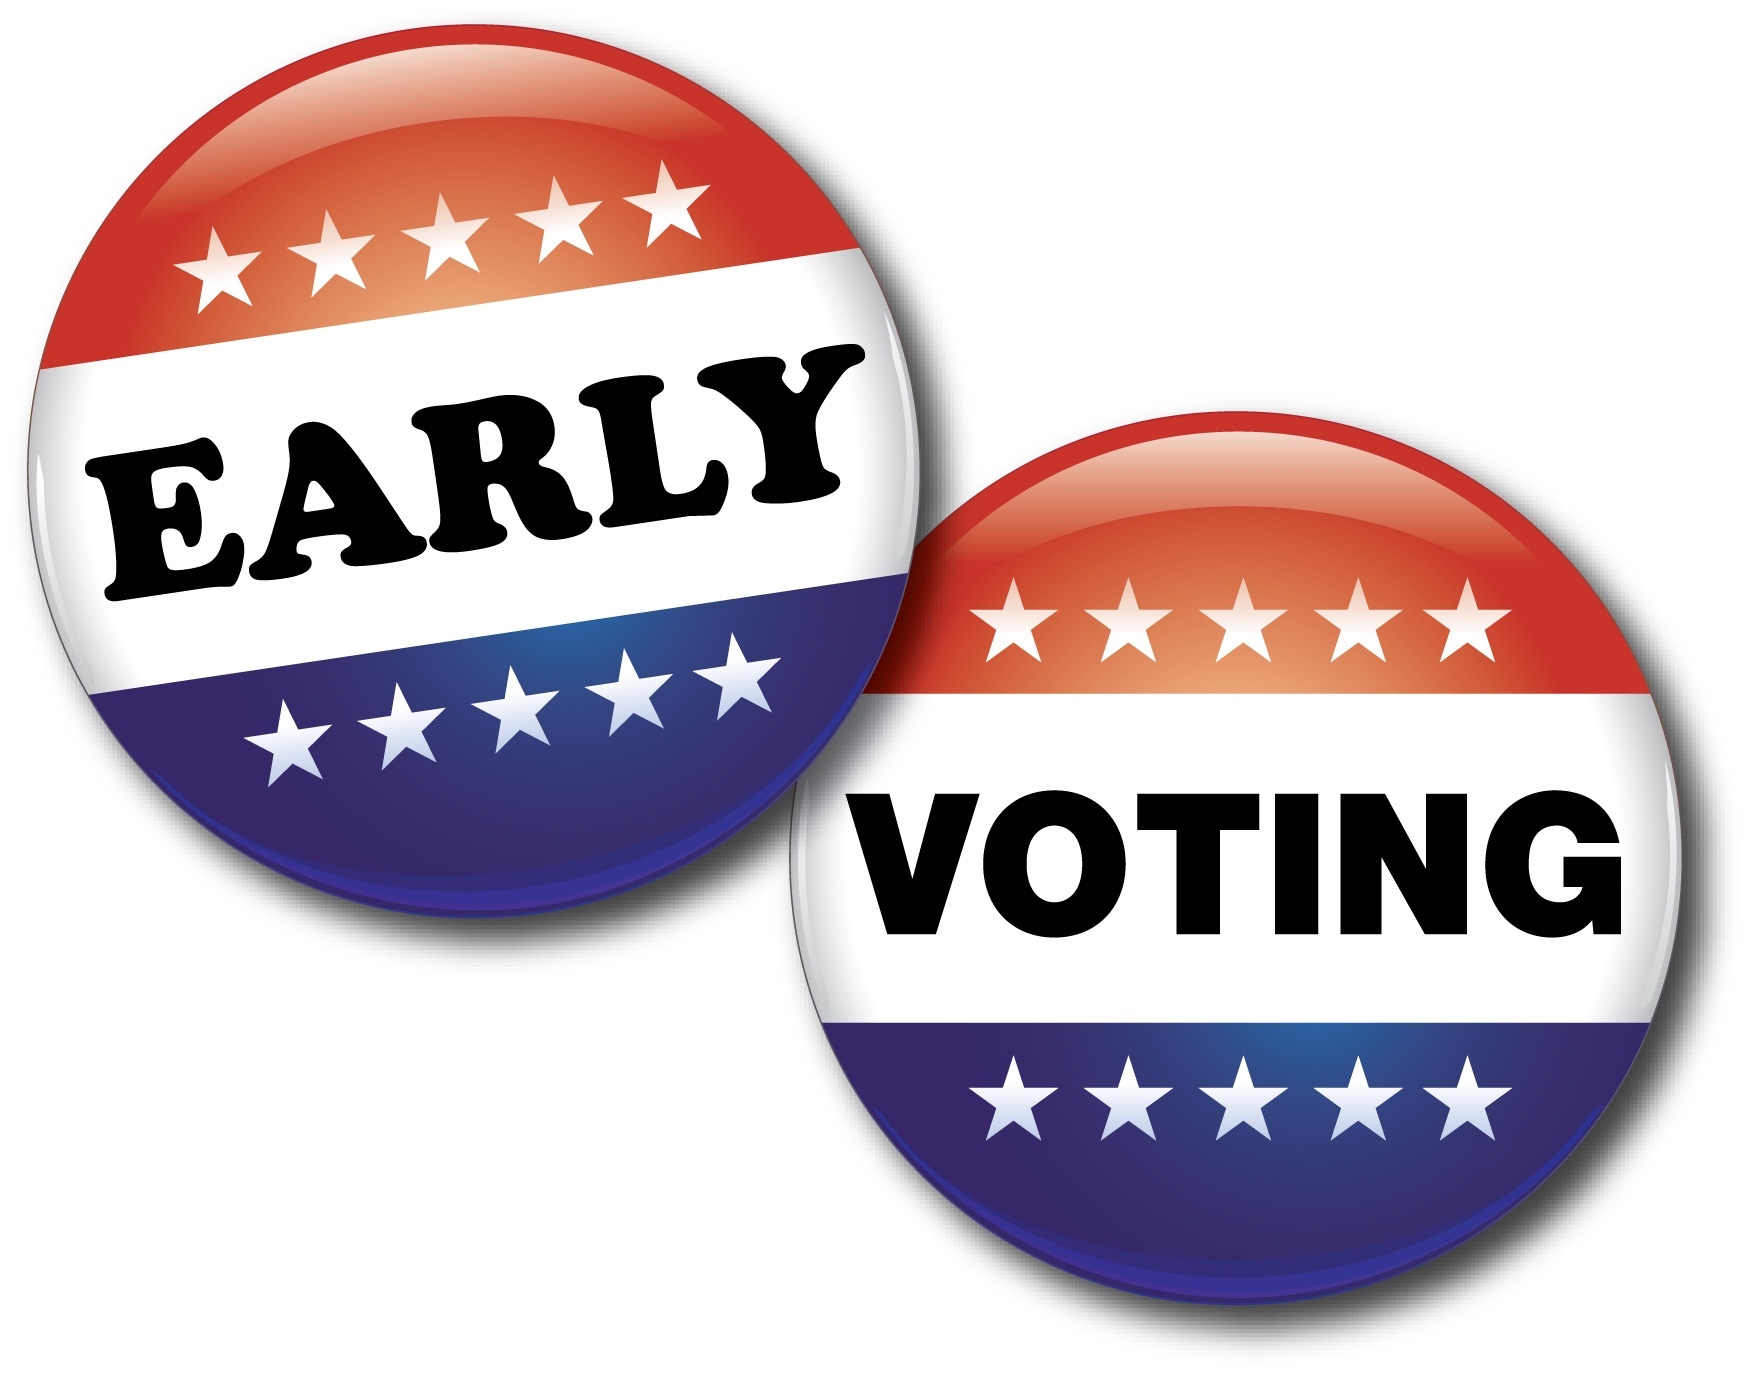 EarlyVoting_ButtonLogo_wShadow_RGB.jpg